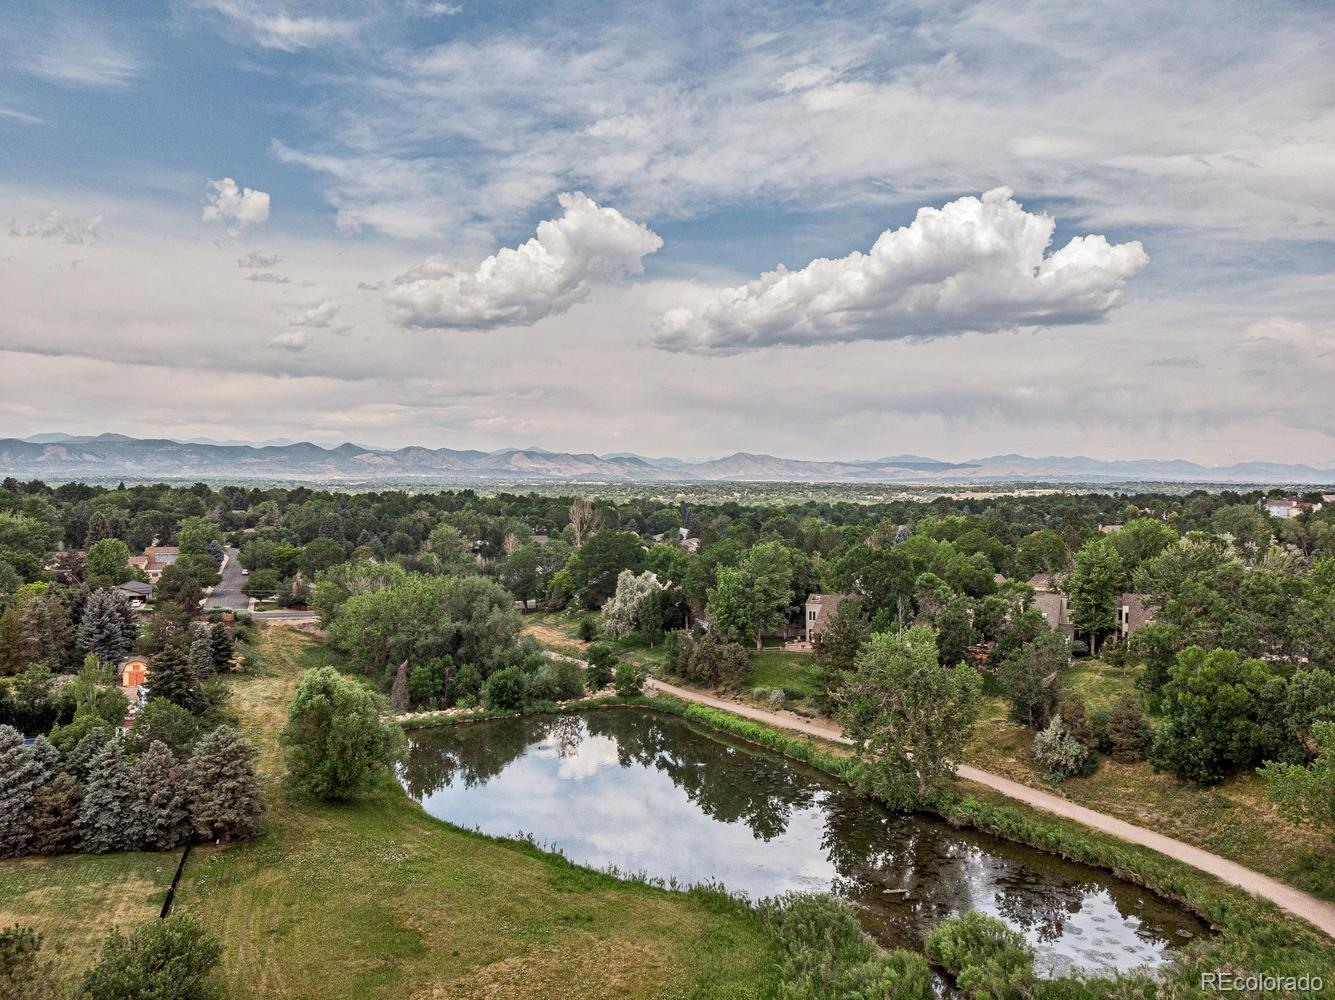 MLS# 5287137 - 8 - 1354 W Briarwood Avenue, Littleton, CO 80120